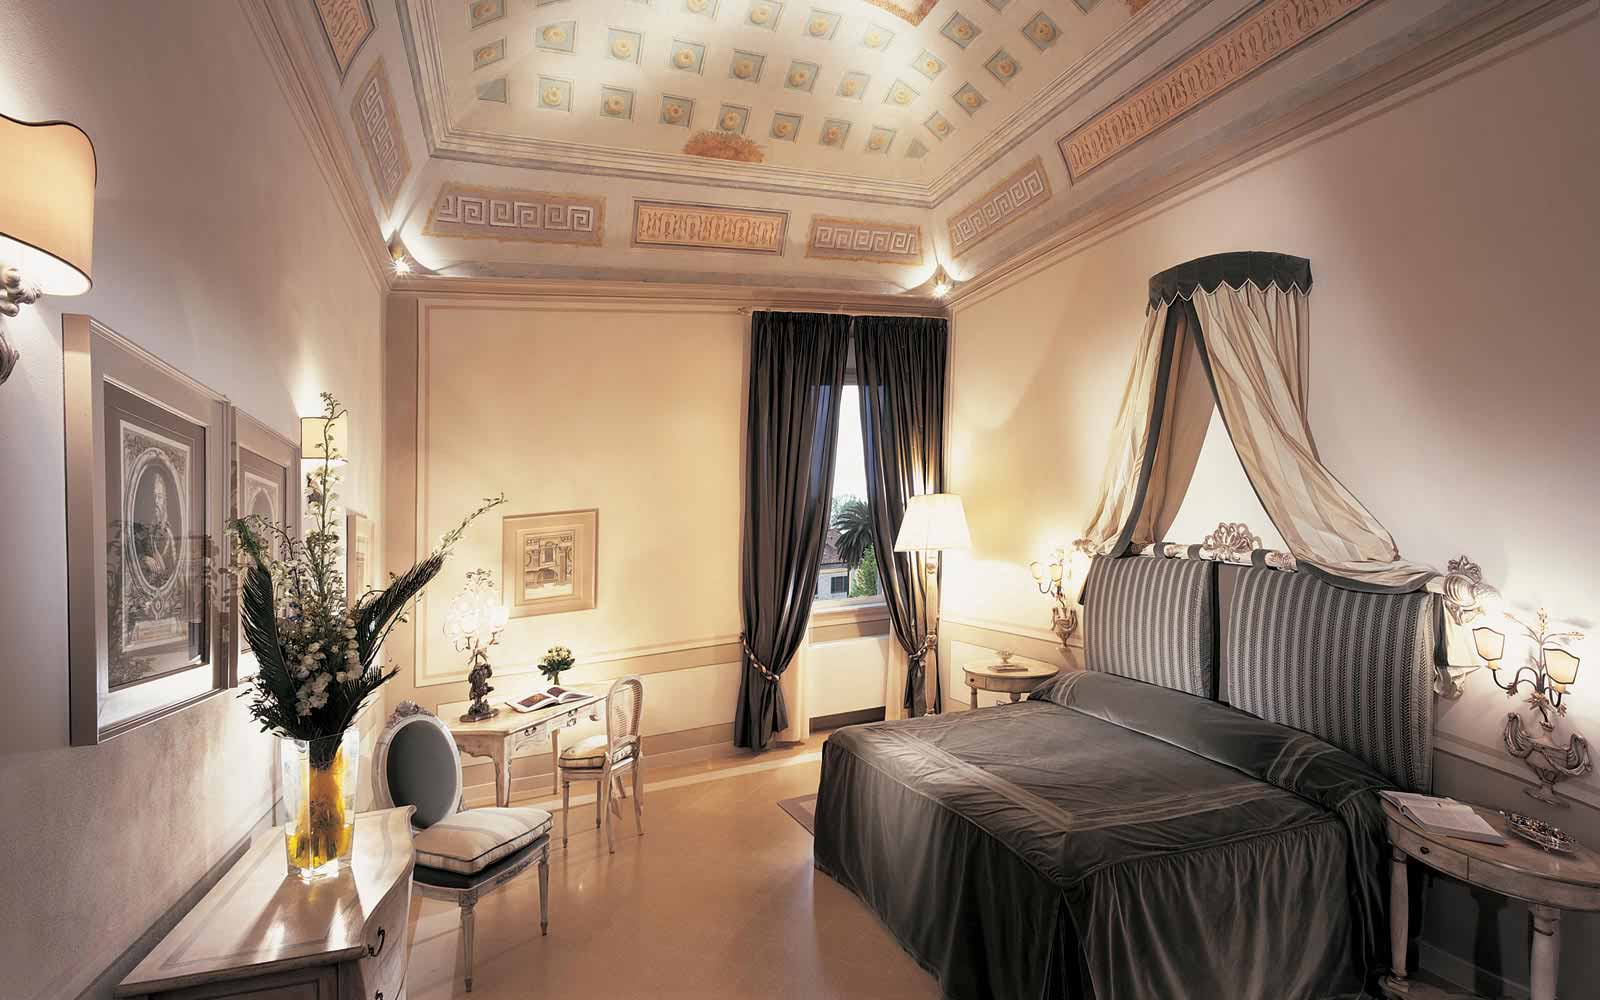 Suite at Bagni di Pisa